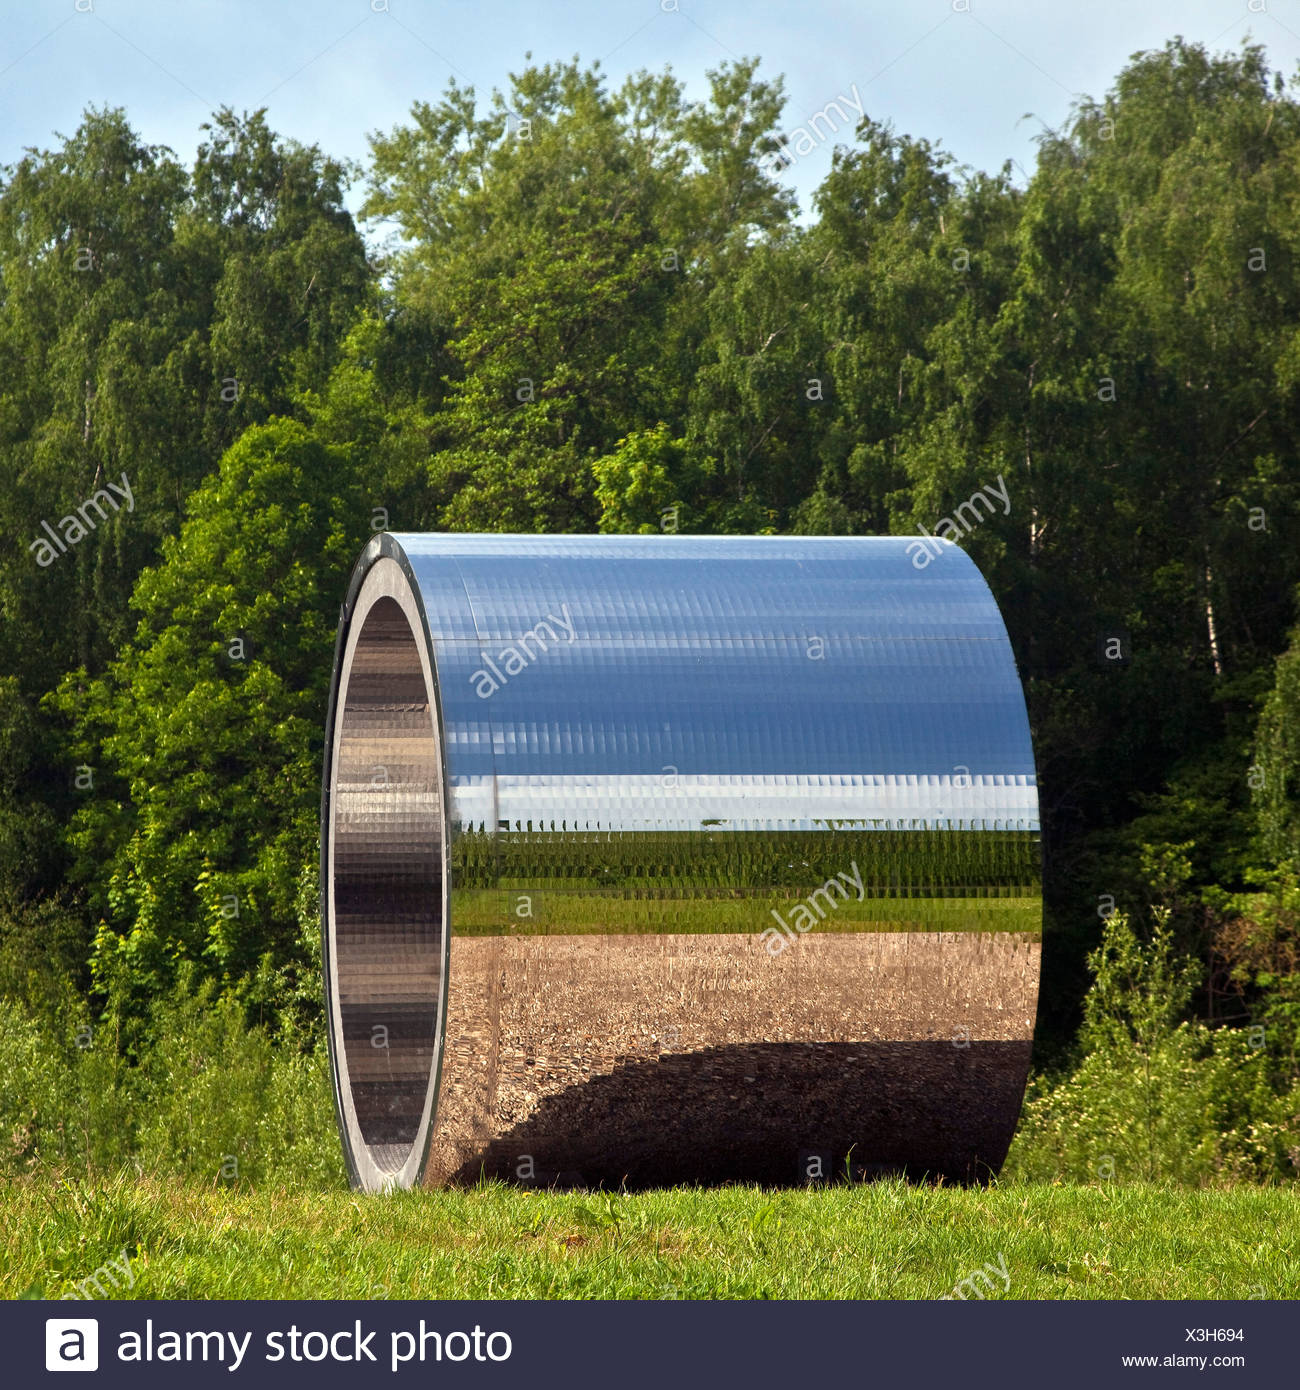 artwork 'Pixelroehre'  ('pixel tube') in a meadow at a forest edge near the mouth of river Koerne, Germany, North Rhine-Westphalia, Ruhr Area, Kamen - Stock Image